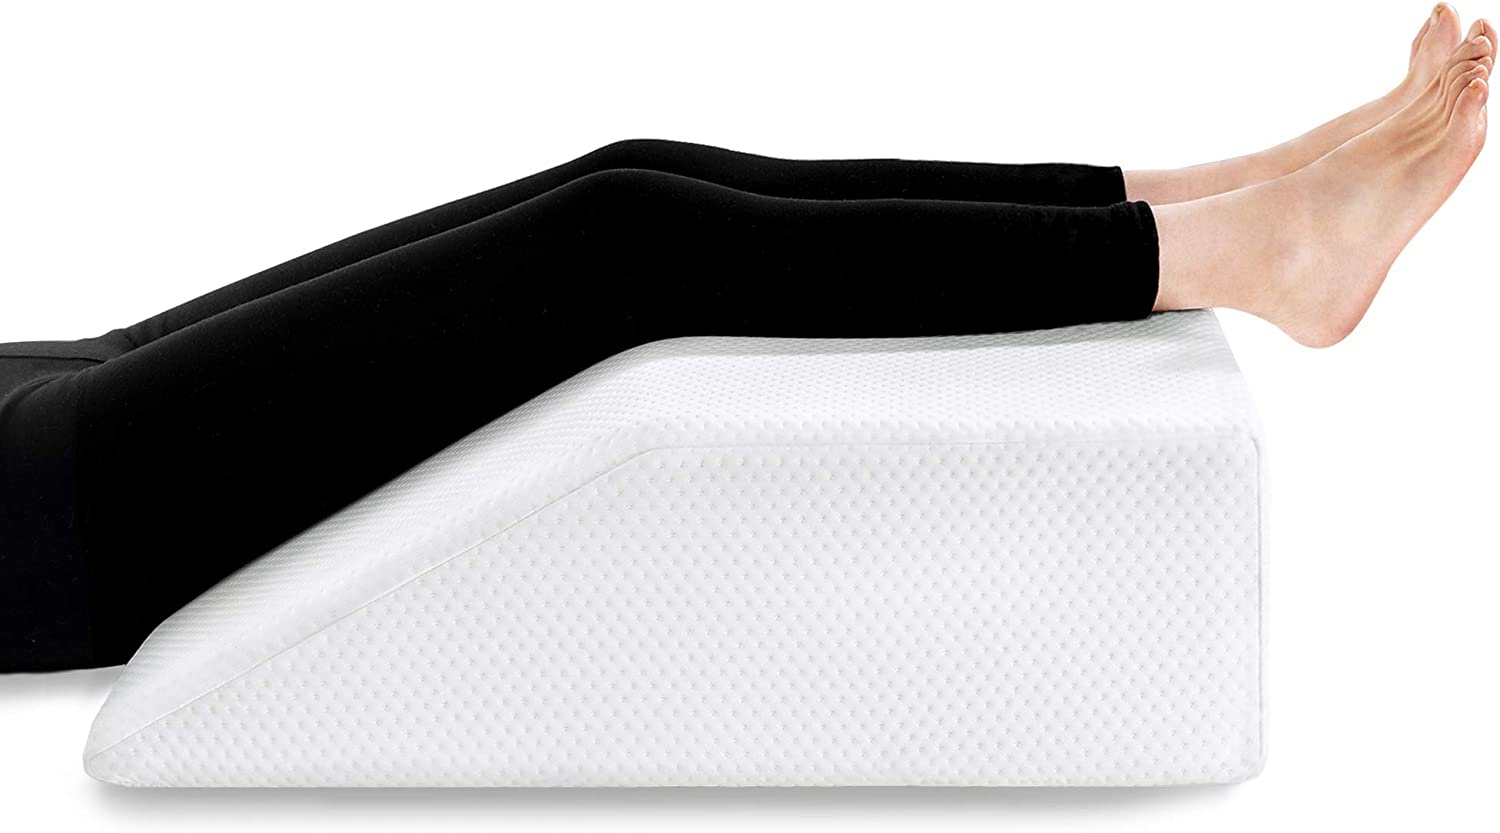 Leg Elevation Pillow with Cooling Gel Memory Foam Top, Wedge Pillow for Back and Legs Support, to Solve Back& Leg &Joint Pain, Acid Reflux, Heartburn, Snoring,Pregnancy